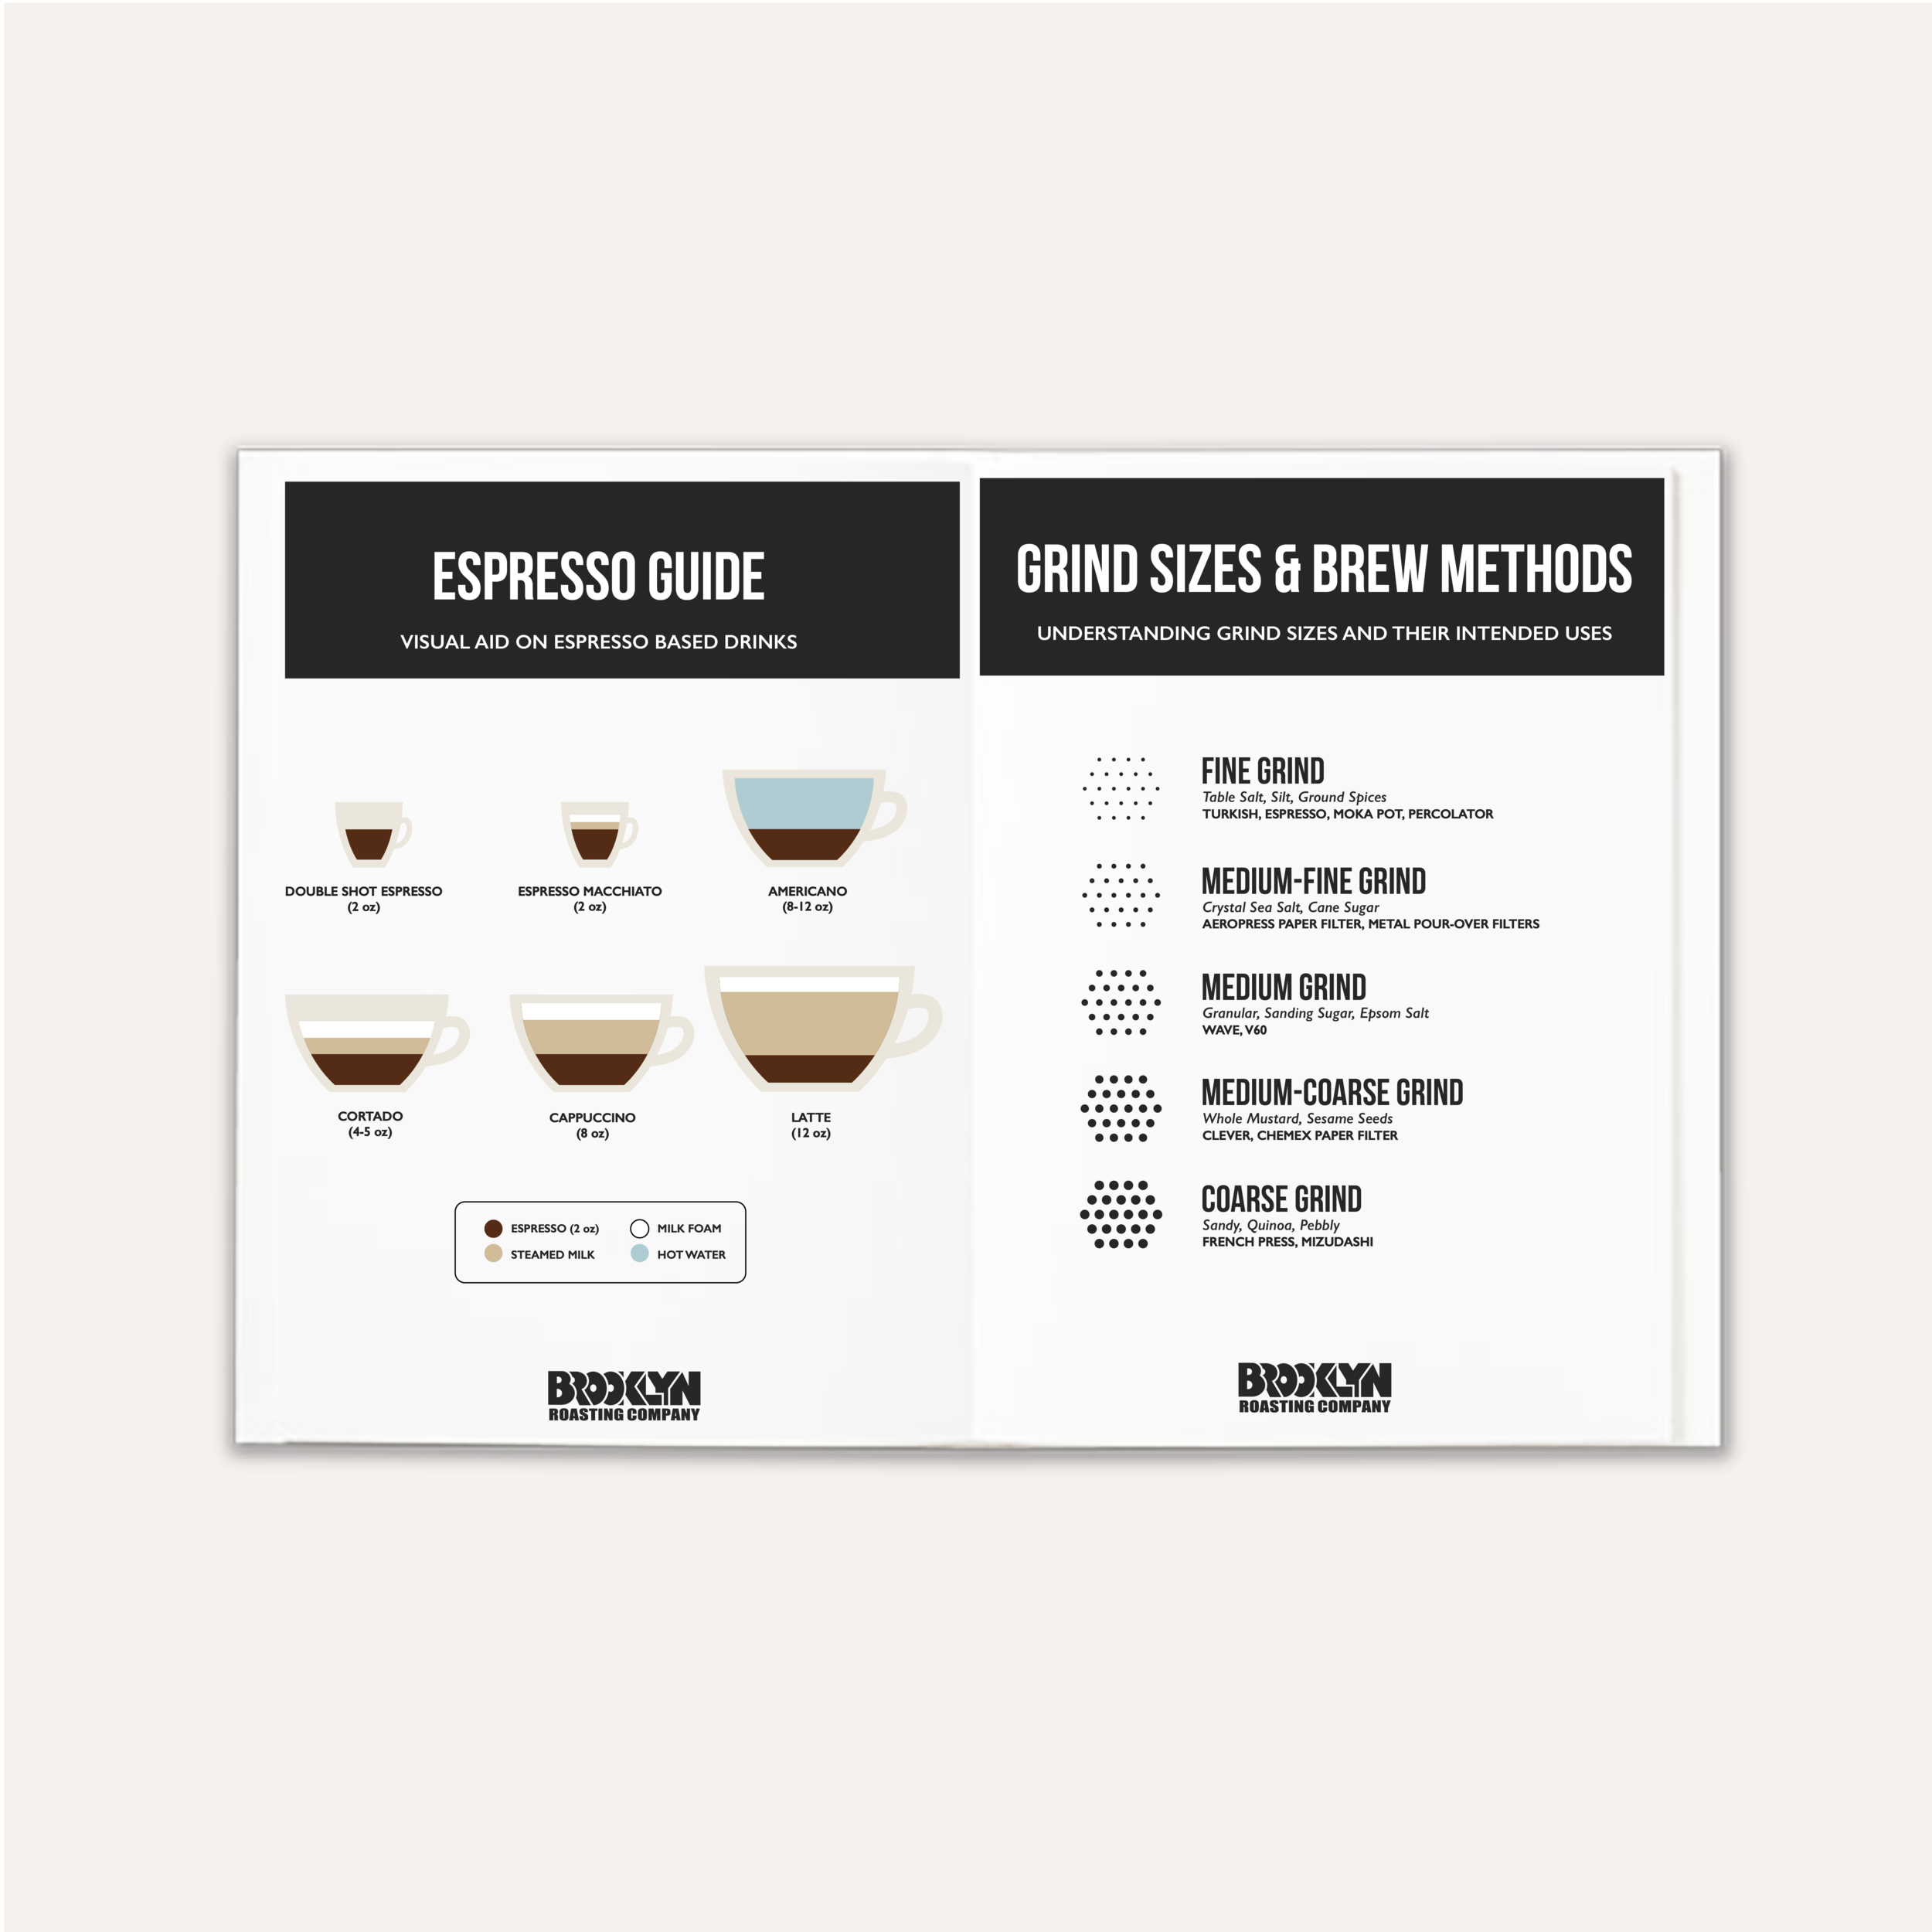 Visual aid for espresso beverages and grind size guide.